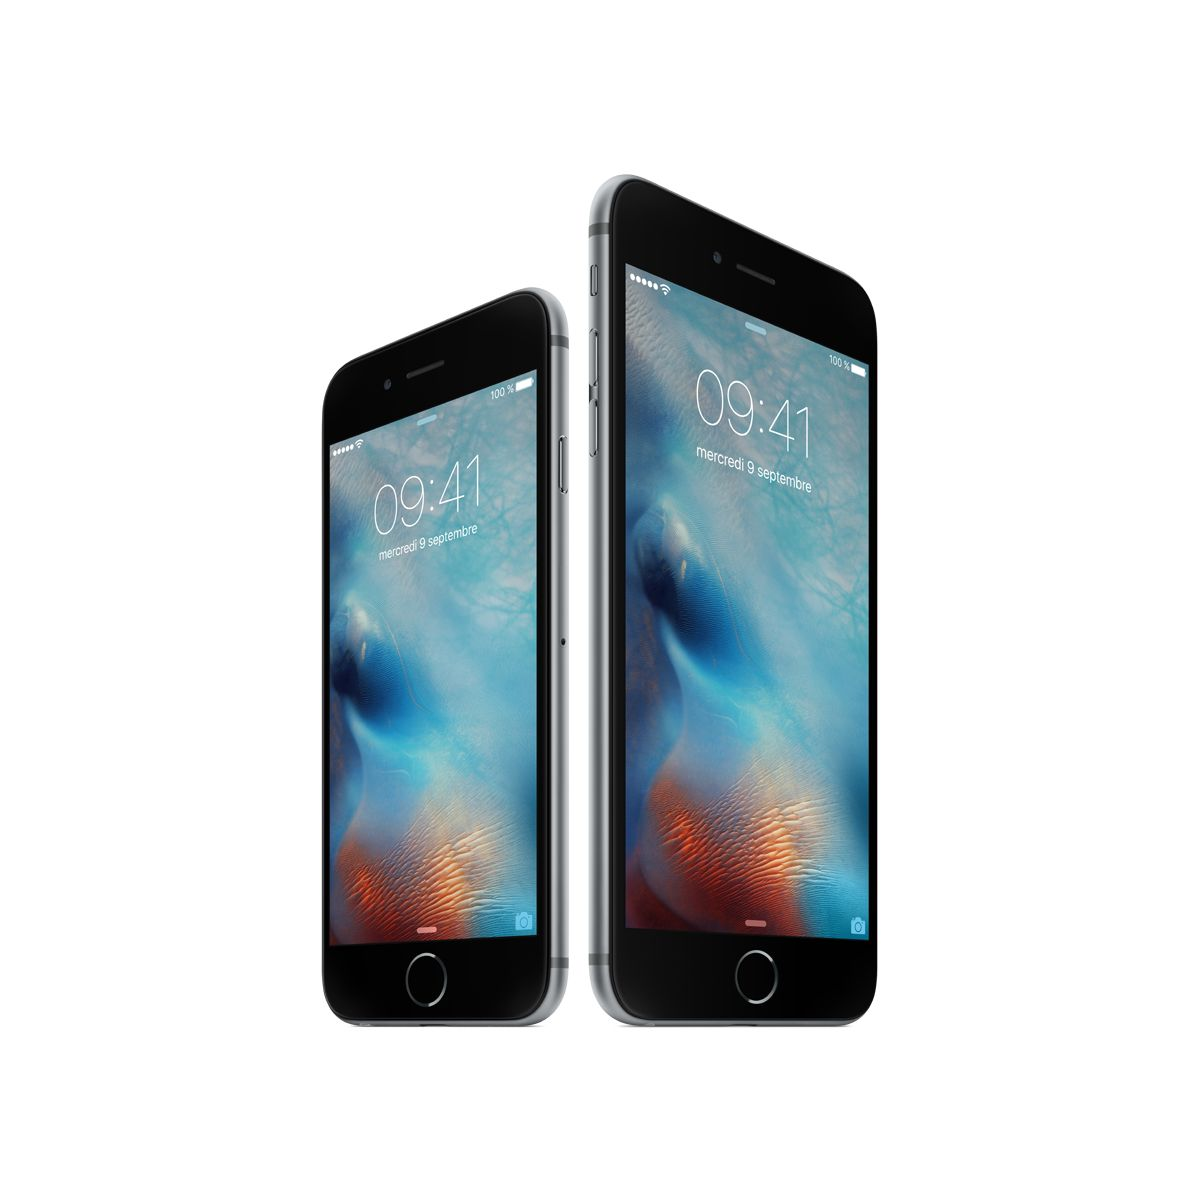 iphone iphone 6s space gray 16go apple occasion. Black Bedroom Furniture Sets. Home Design Ideas